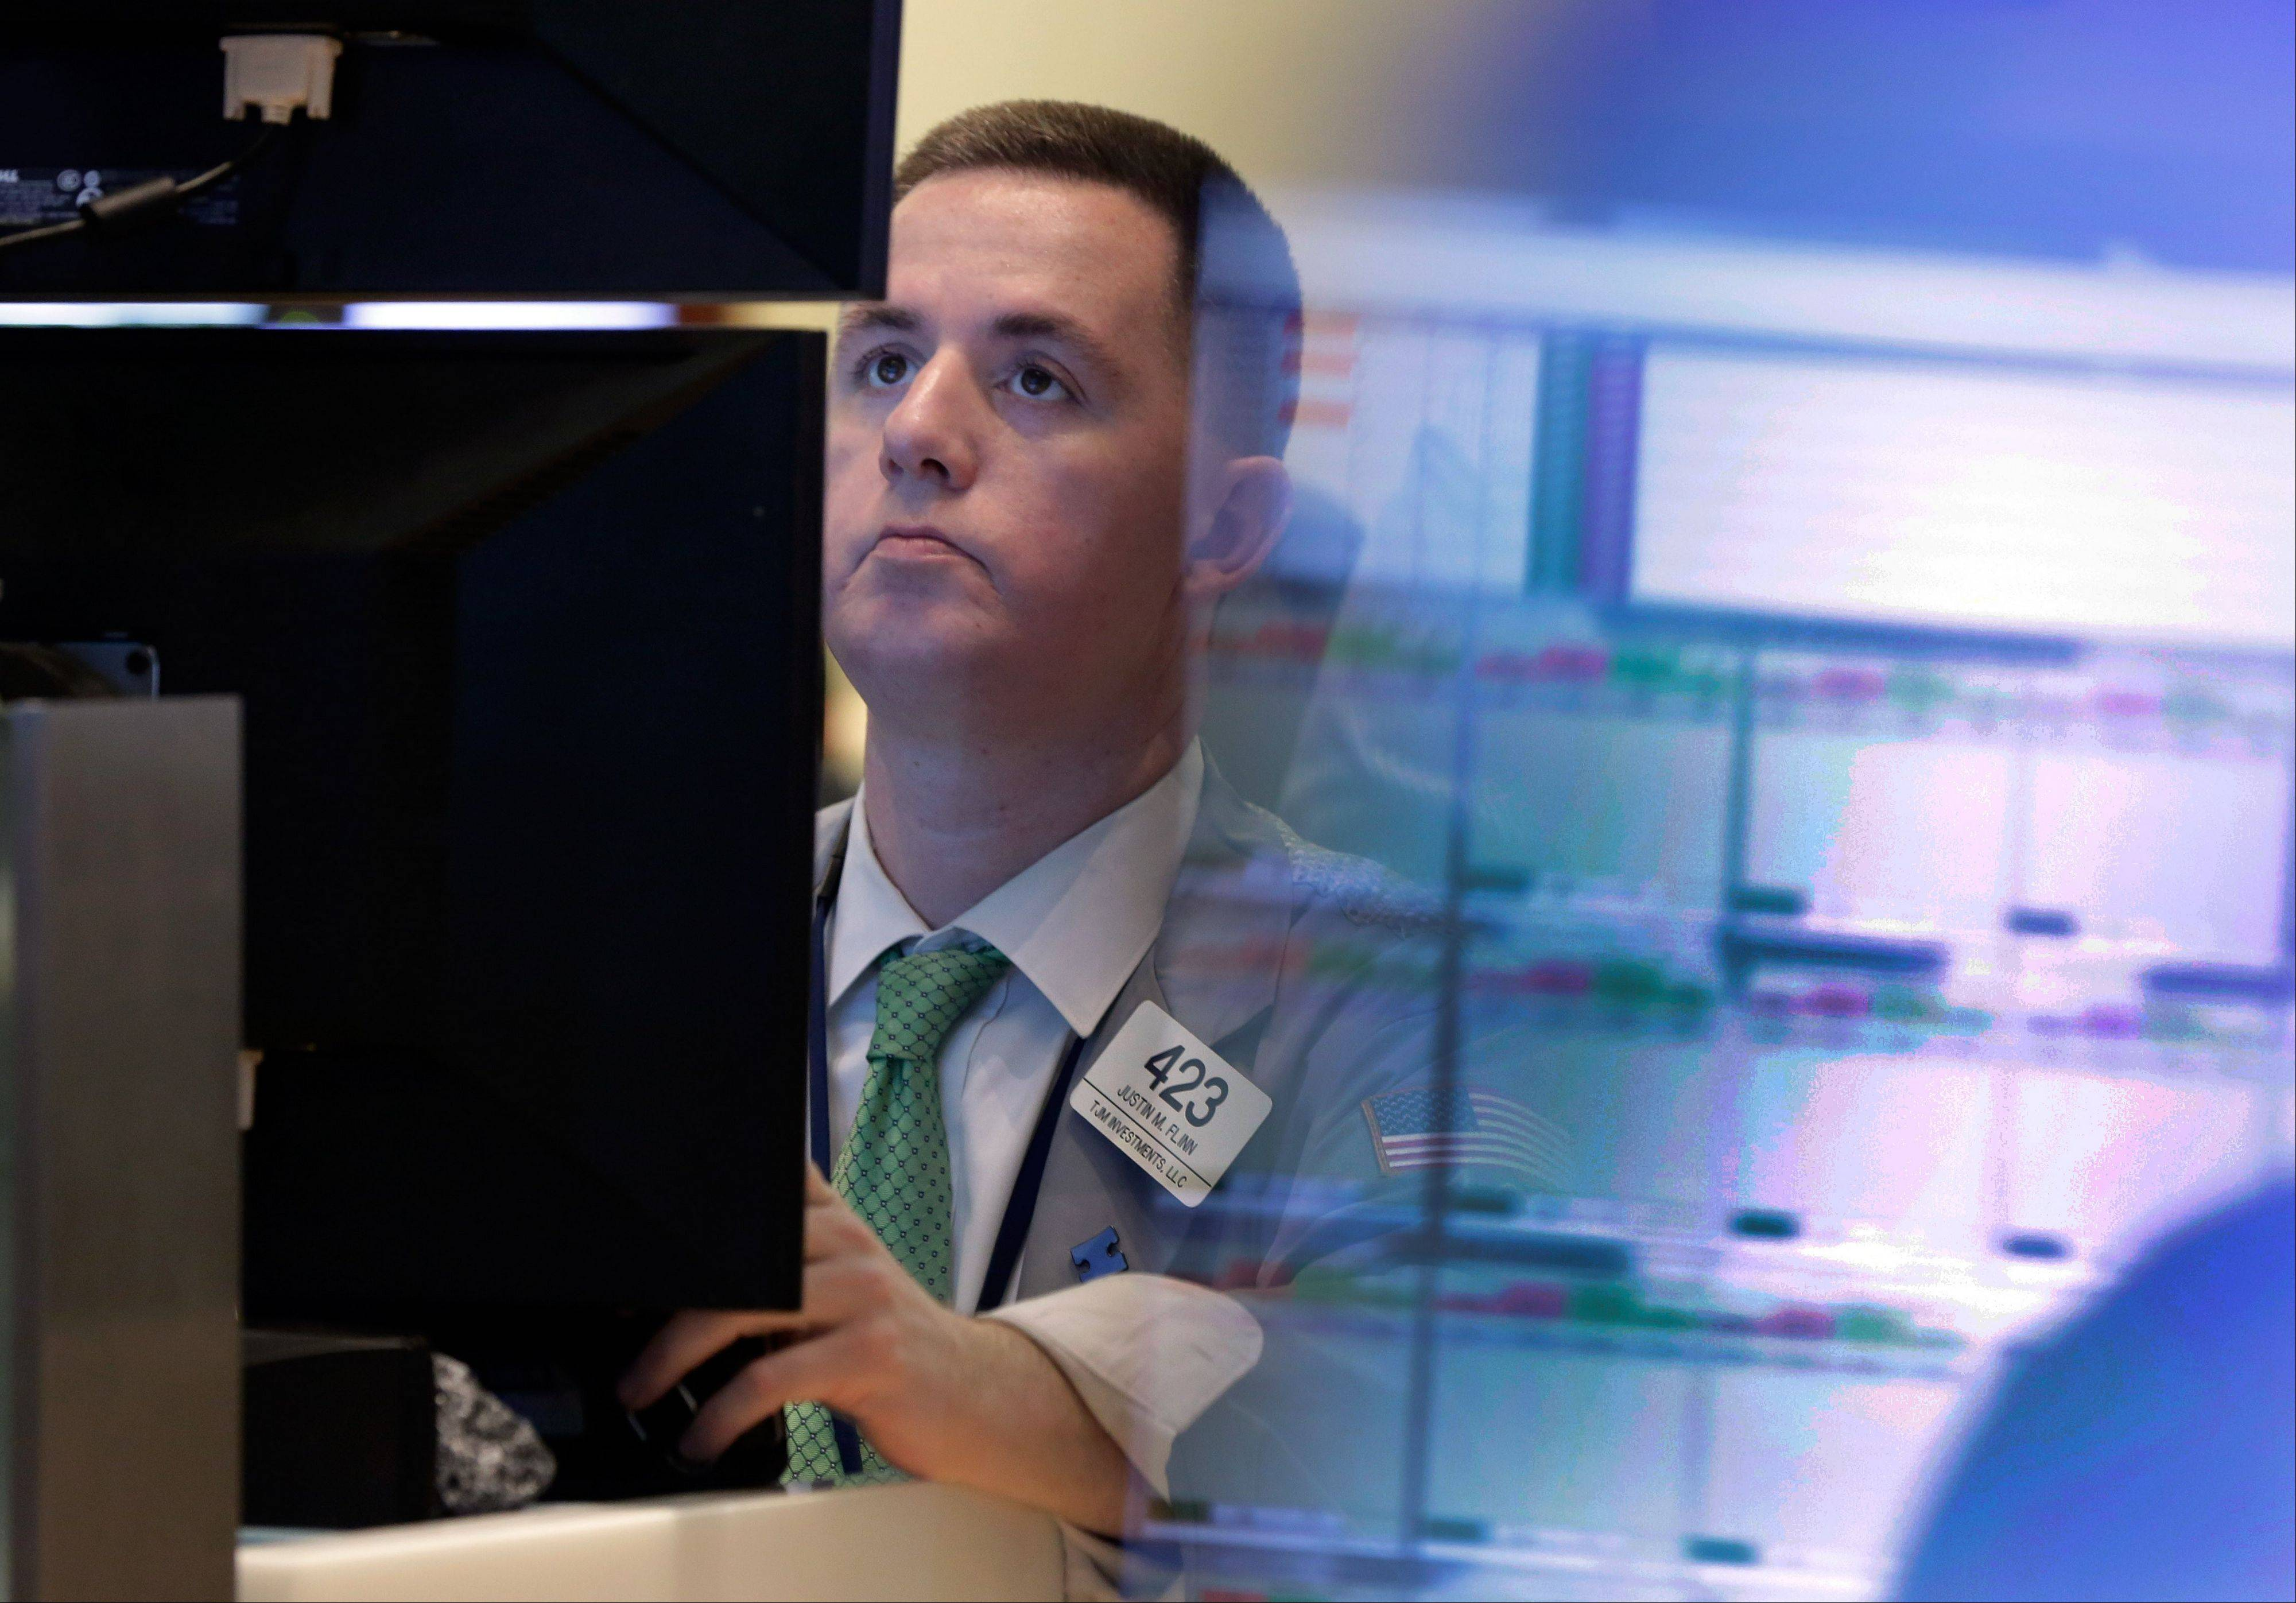 U.S. stocks rose, giving the Standard & Poor's 500 Index a third straight day of gains, as the start of corporate earnings season fueled increased optimism about growth in the world's largest economy.